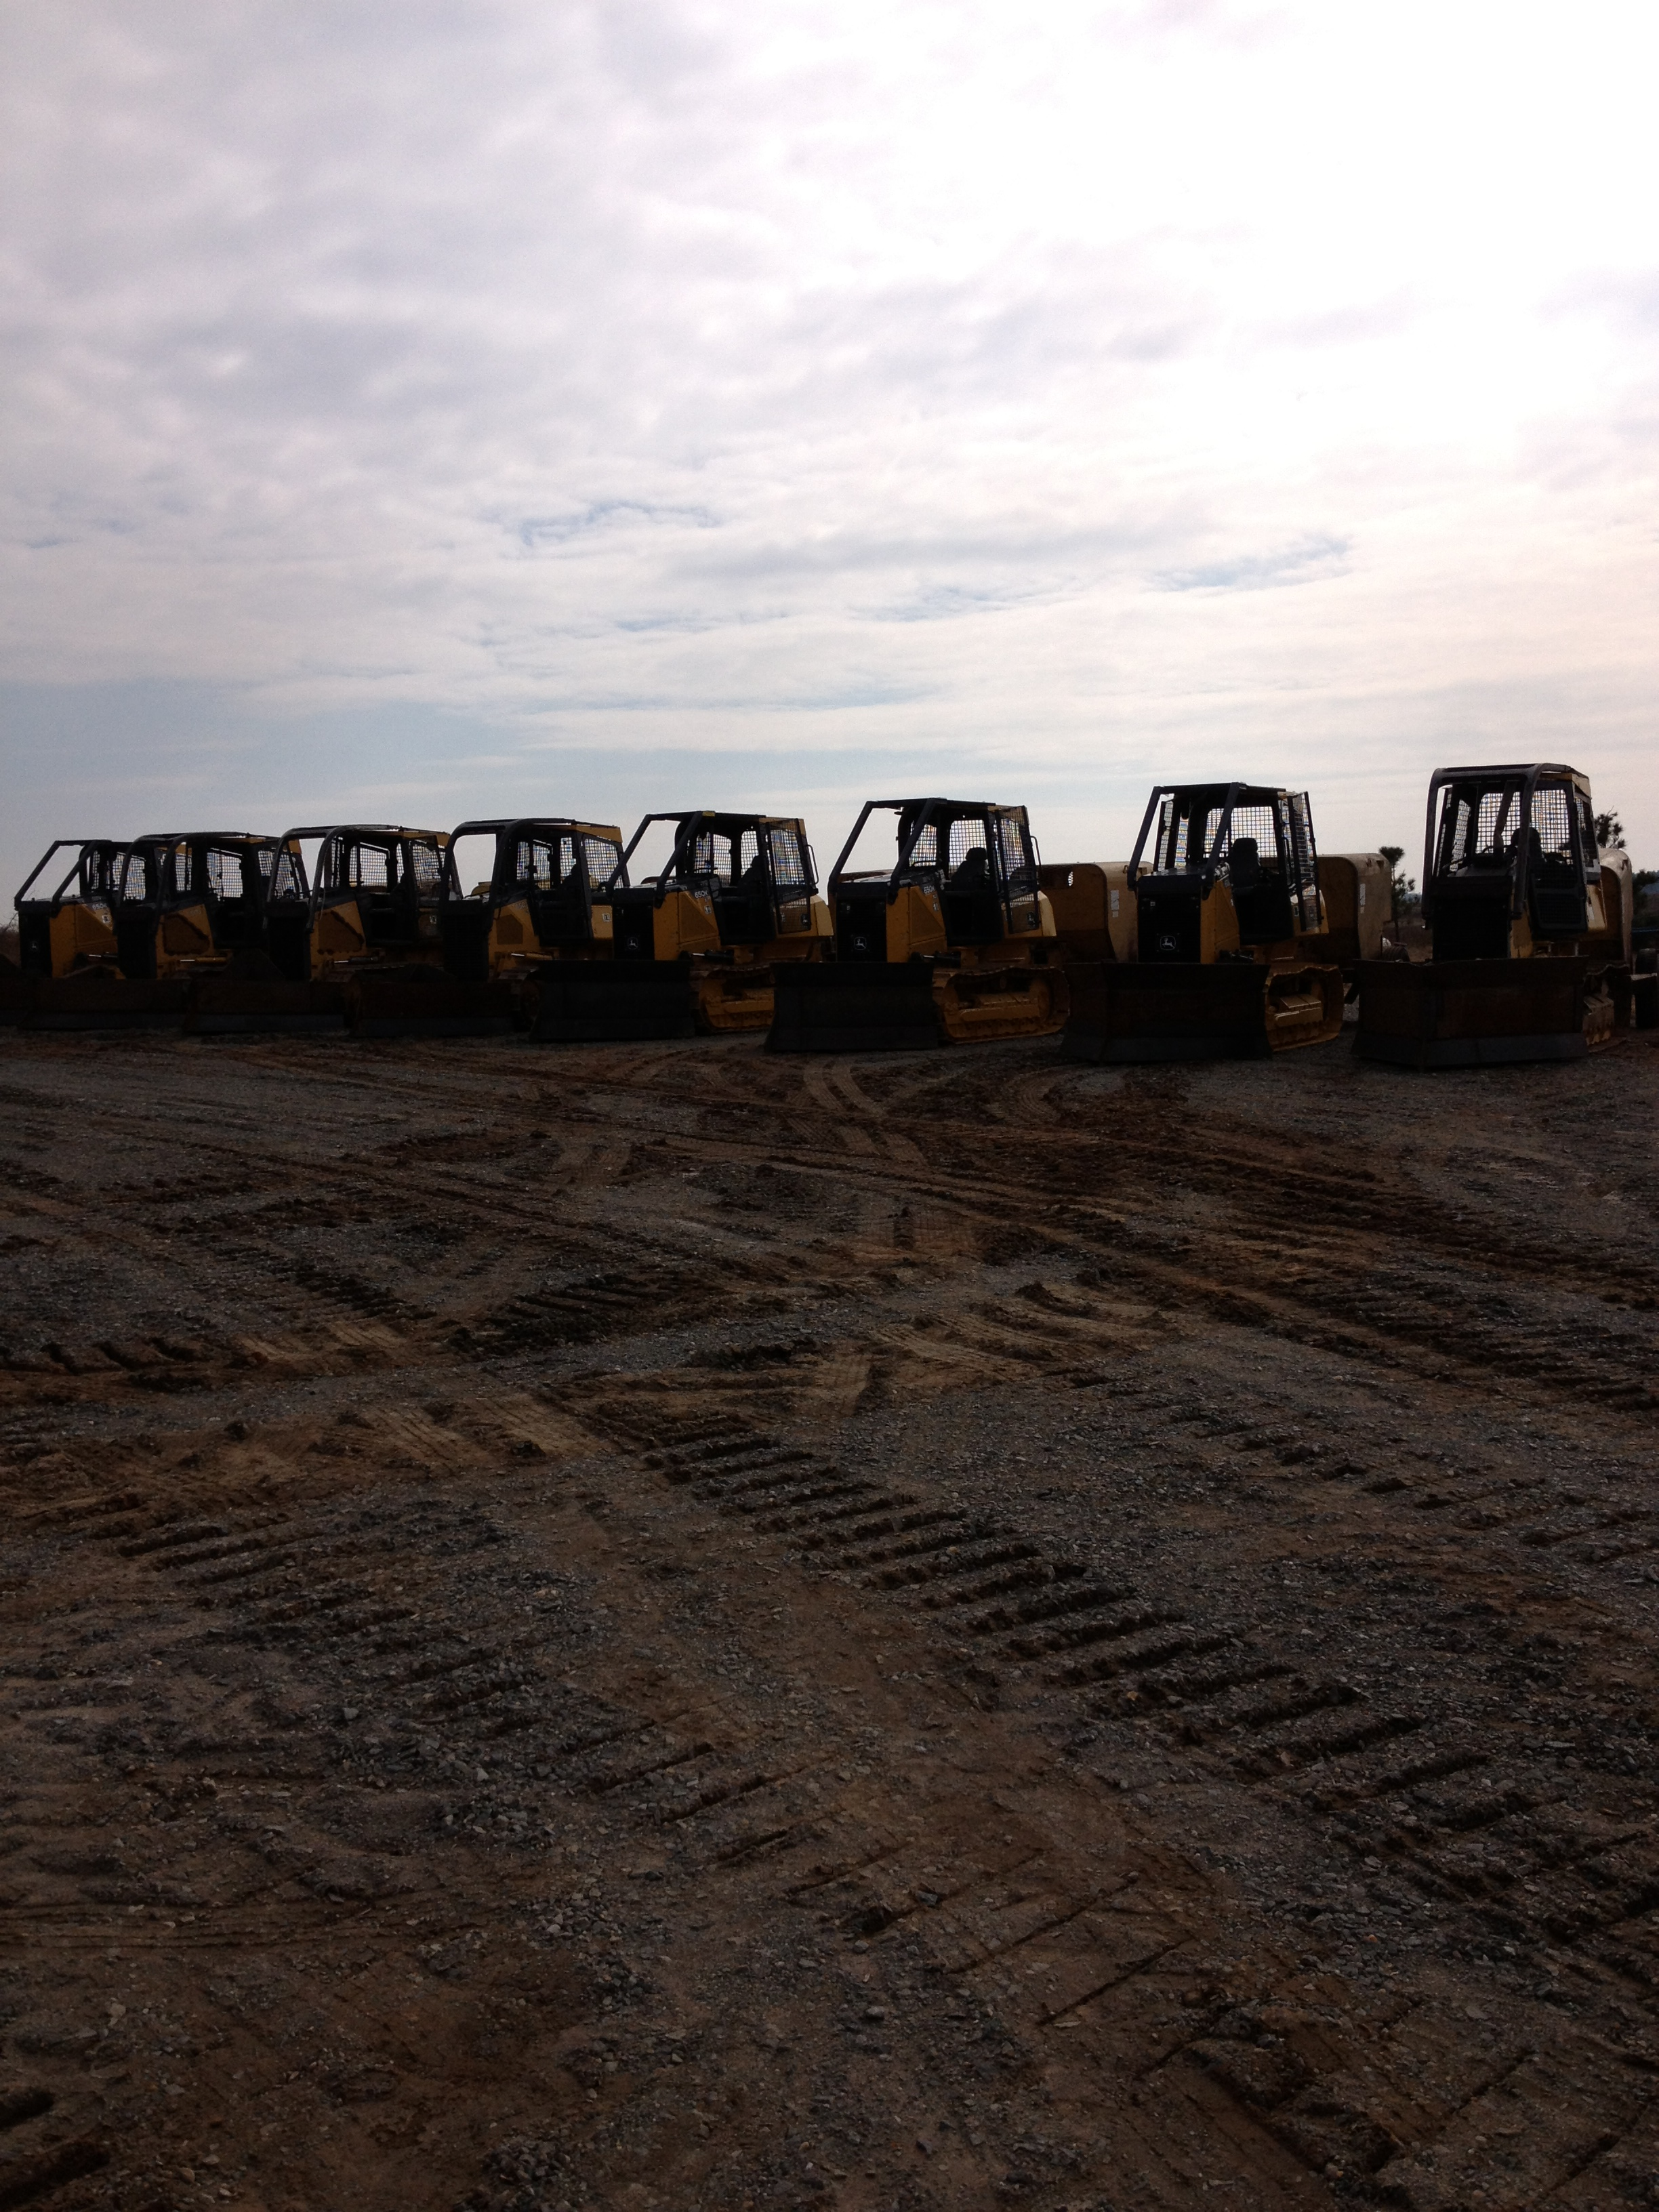 Bull Dozers ready for a new planting season